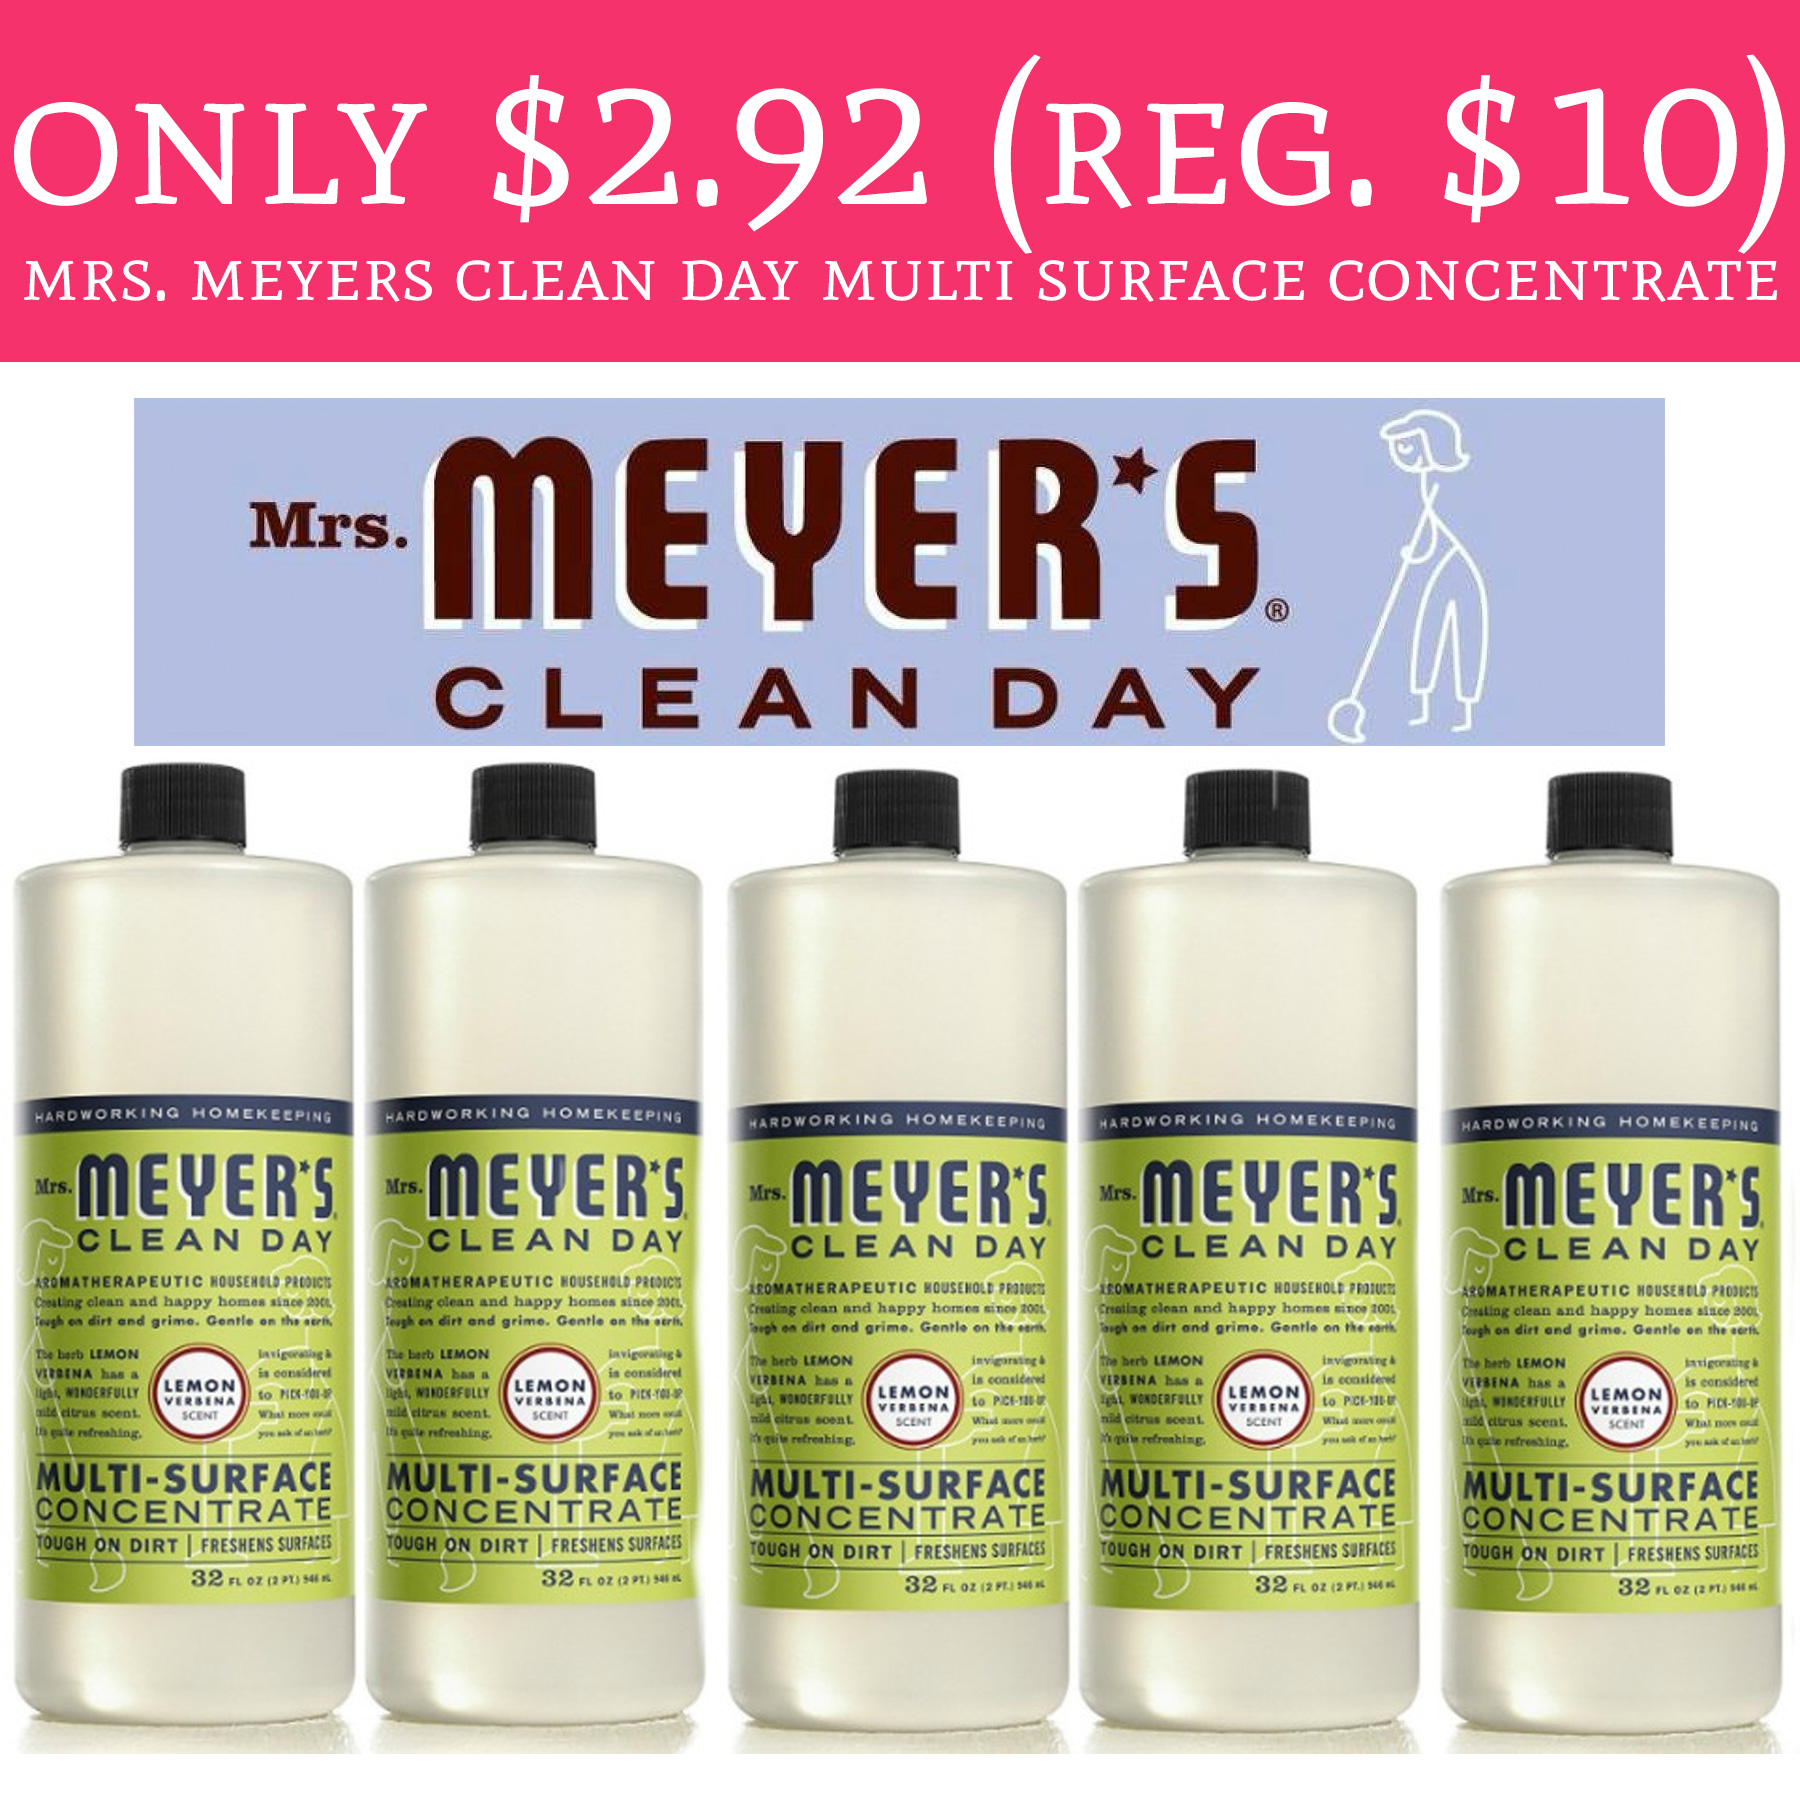 Mrs meyers coupon code